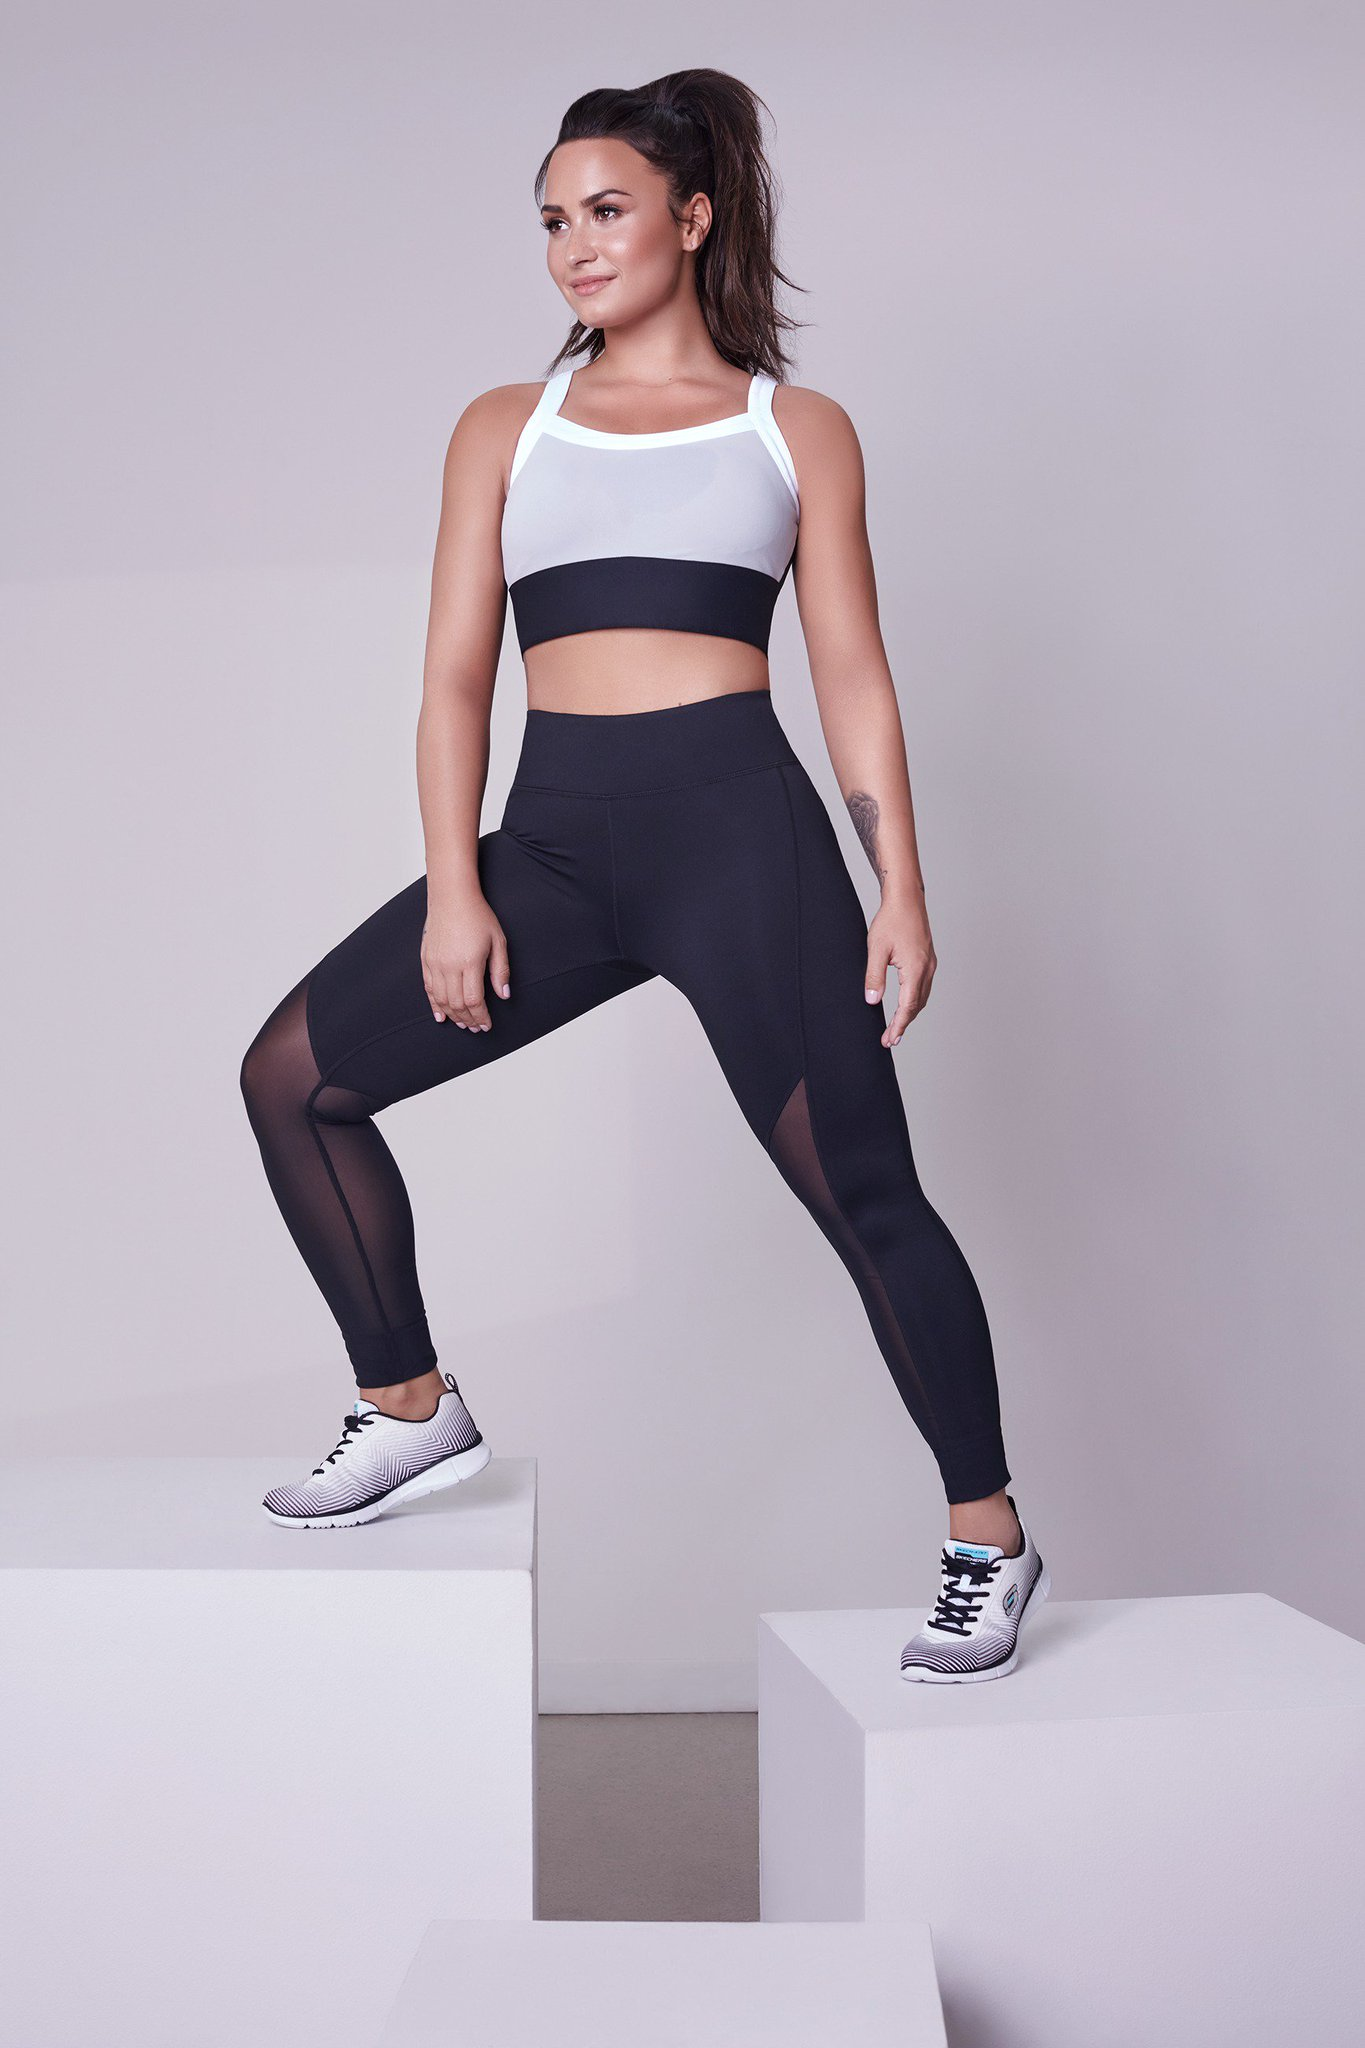 Getting so close to the launch!! #Demi4Fabletics @fabletics https://t.co/rD1v2tH7sQ https://t.co/WvzXUynaPz